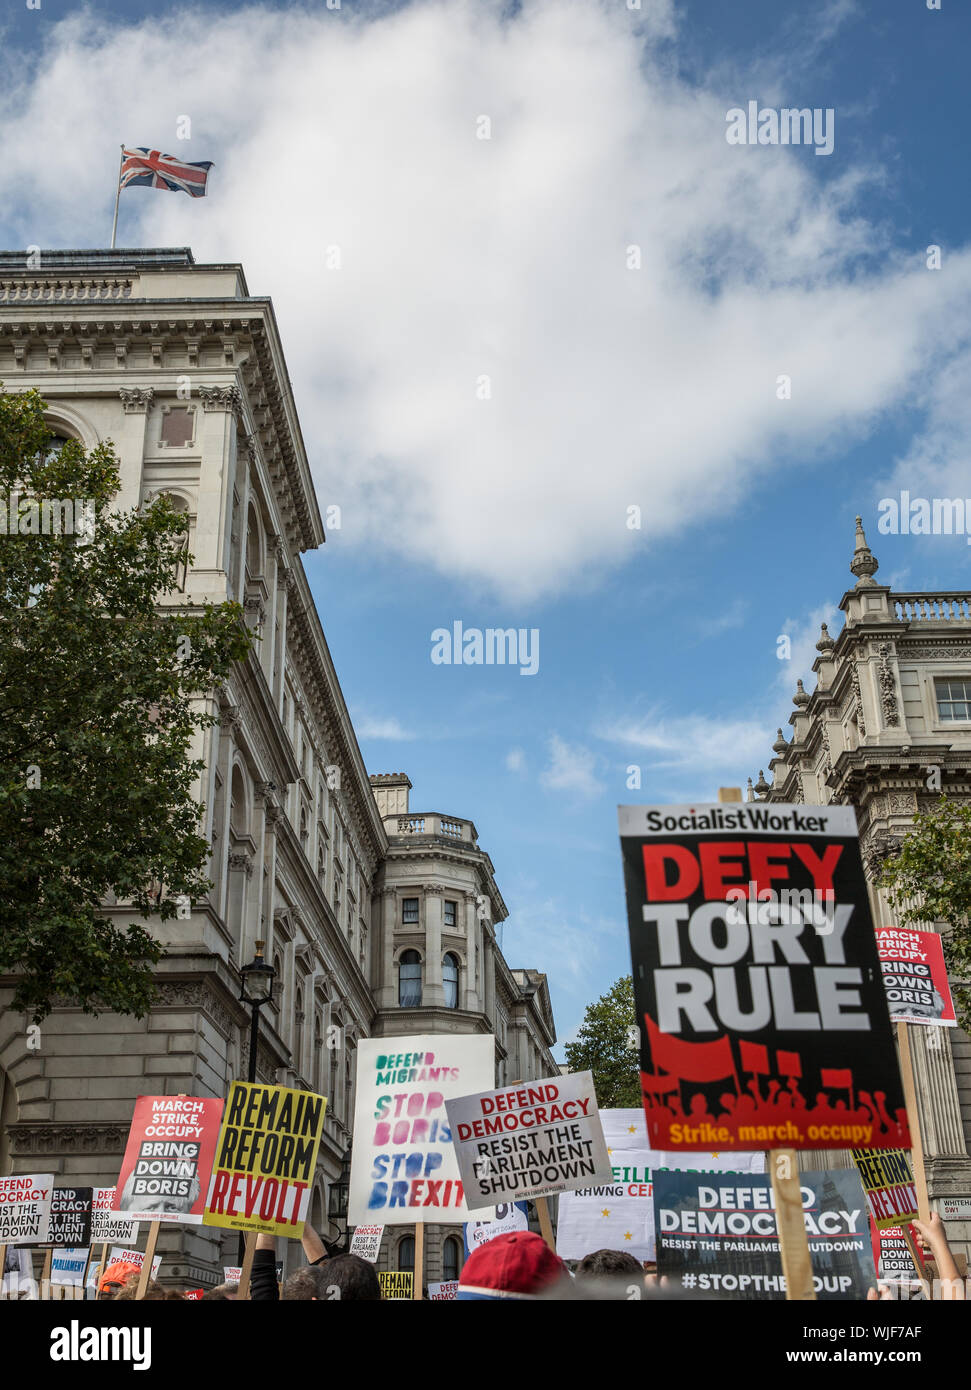 Pro Democracy rally, London 31st Aug 2019 - Stock Photo